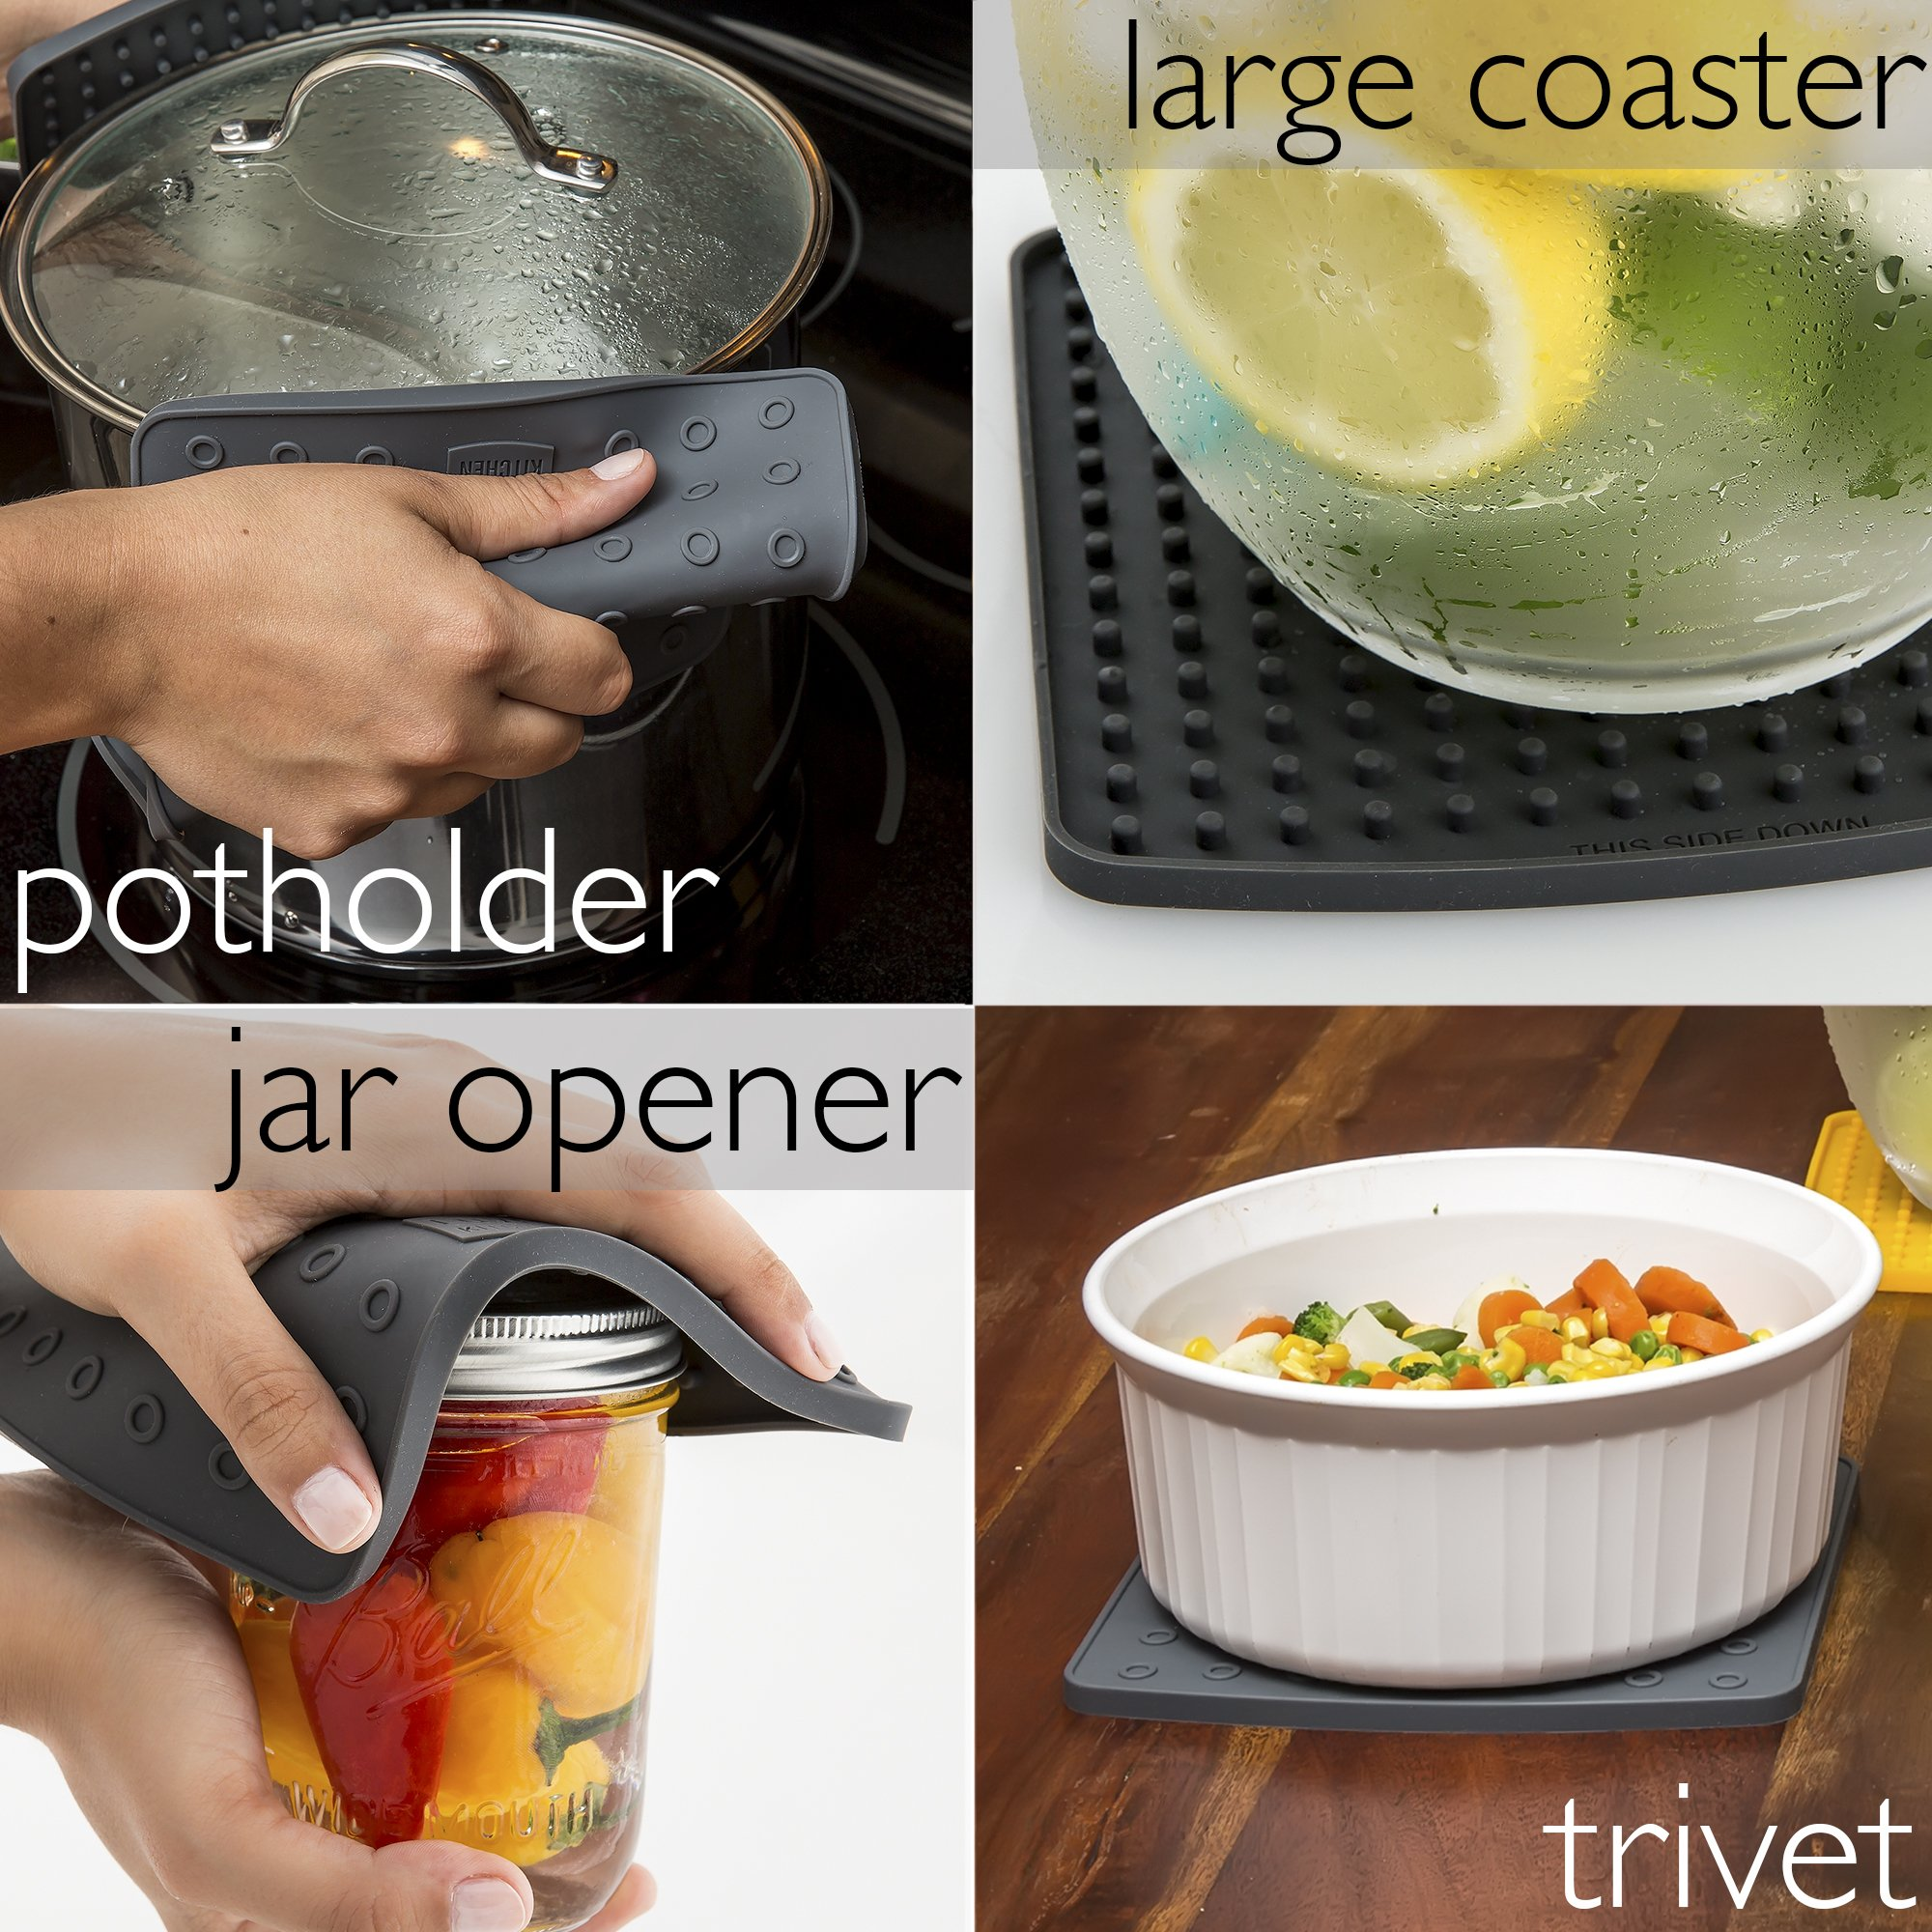 Premium Silicone Trivet Mats/Hot Pads, Pot Holders, Spoon Rest, Jar Opener & Coasters - Our 5 in 1 Kitchen Tool is Heat Resistant to 442 °F, Thick & Flexible (7'' x 7'', Dark Gray, 1 Pair) by Love This Kitchen (Image #3)